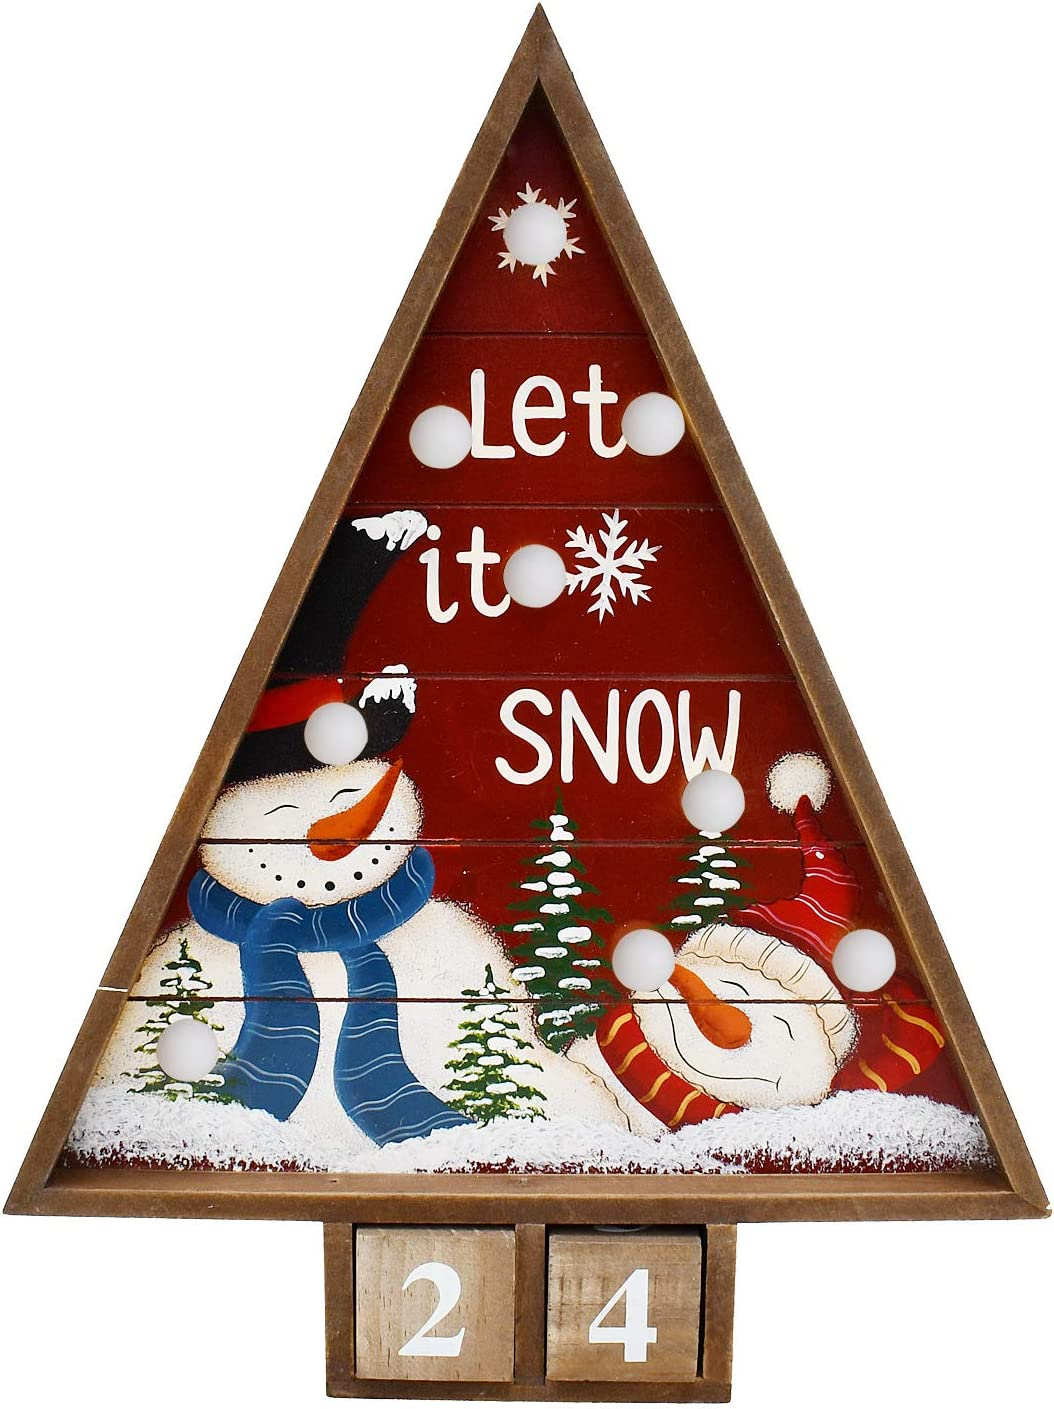 Wooden Advent Countdown Calendar with Lights and 2 Blocks - Days Until Christmas Countdown - Wood Snowman Santa Christmas Tree Tabletop Decoration Rustic Holiday Xmas Decor for Home (Snowman A)